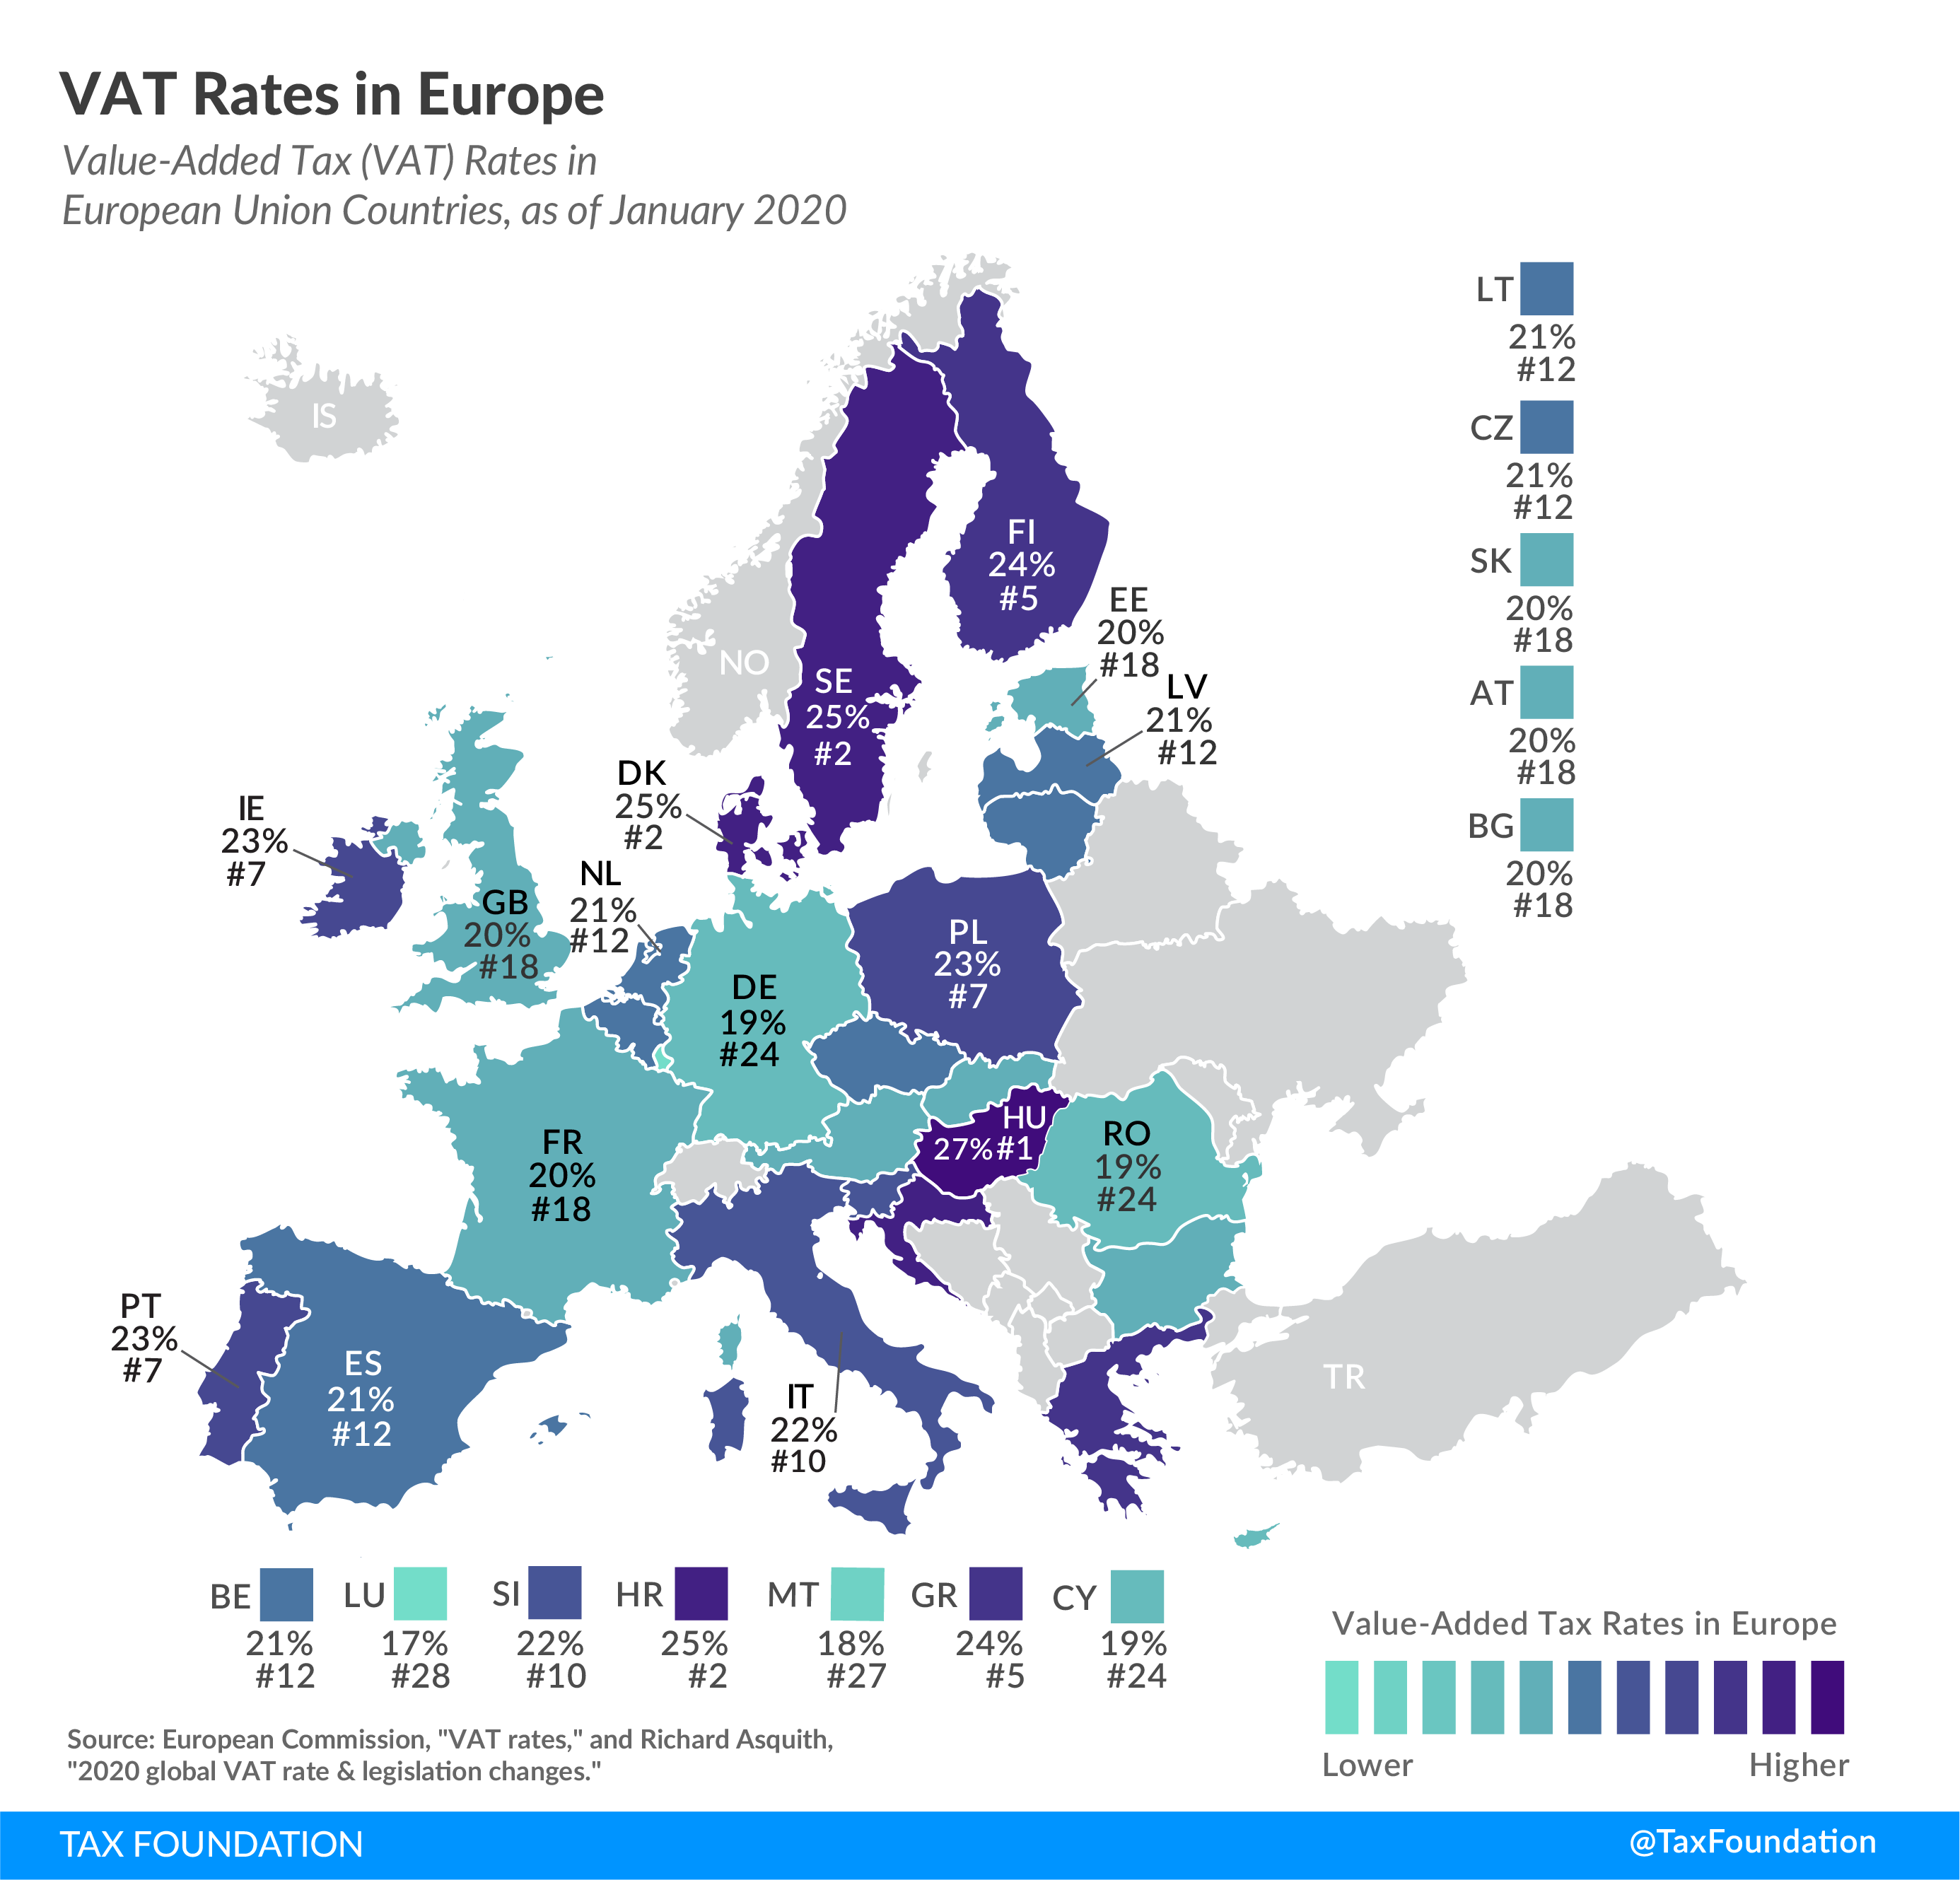 VAT Rates in Europe, 2020 VAT rates in Europe, 2020 VAT taxes in Europe, Value-added tax rates in Europe, value-added tax Europe